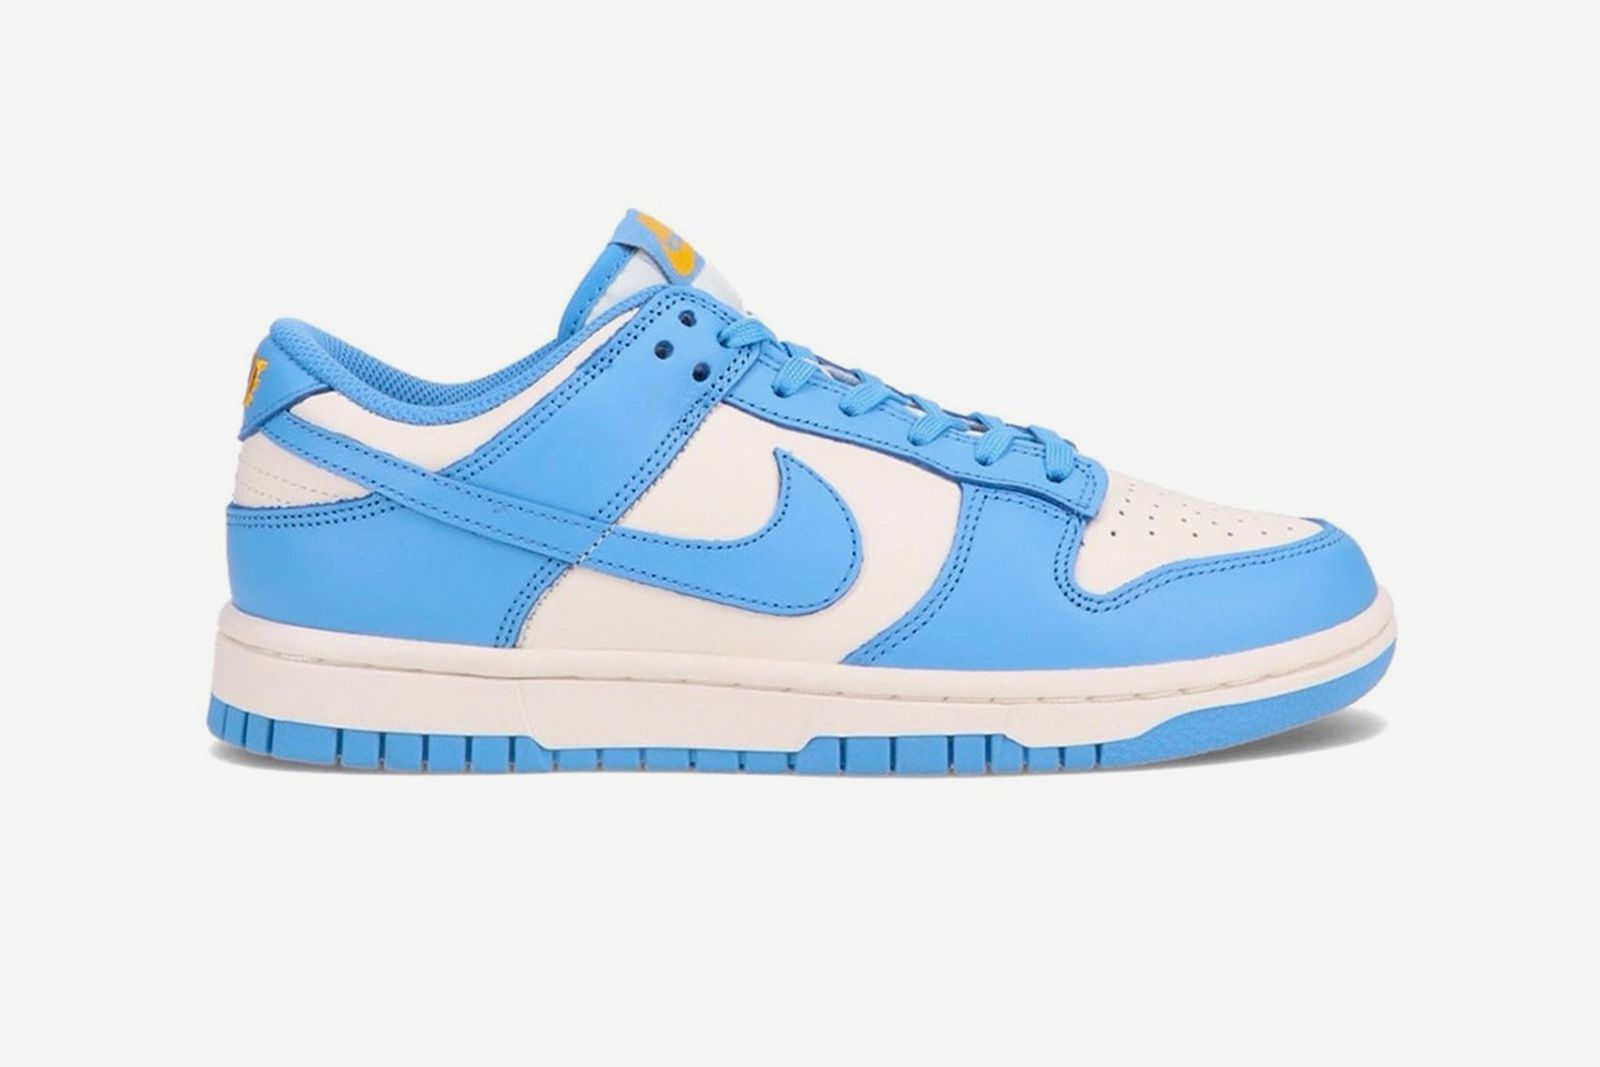 nike-dunks-january-2021-release-date-price-02